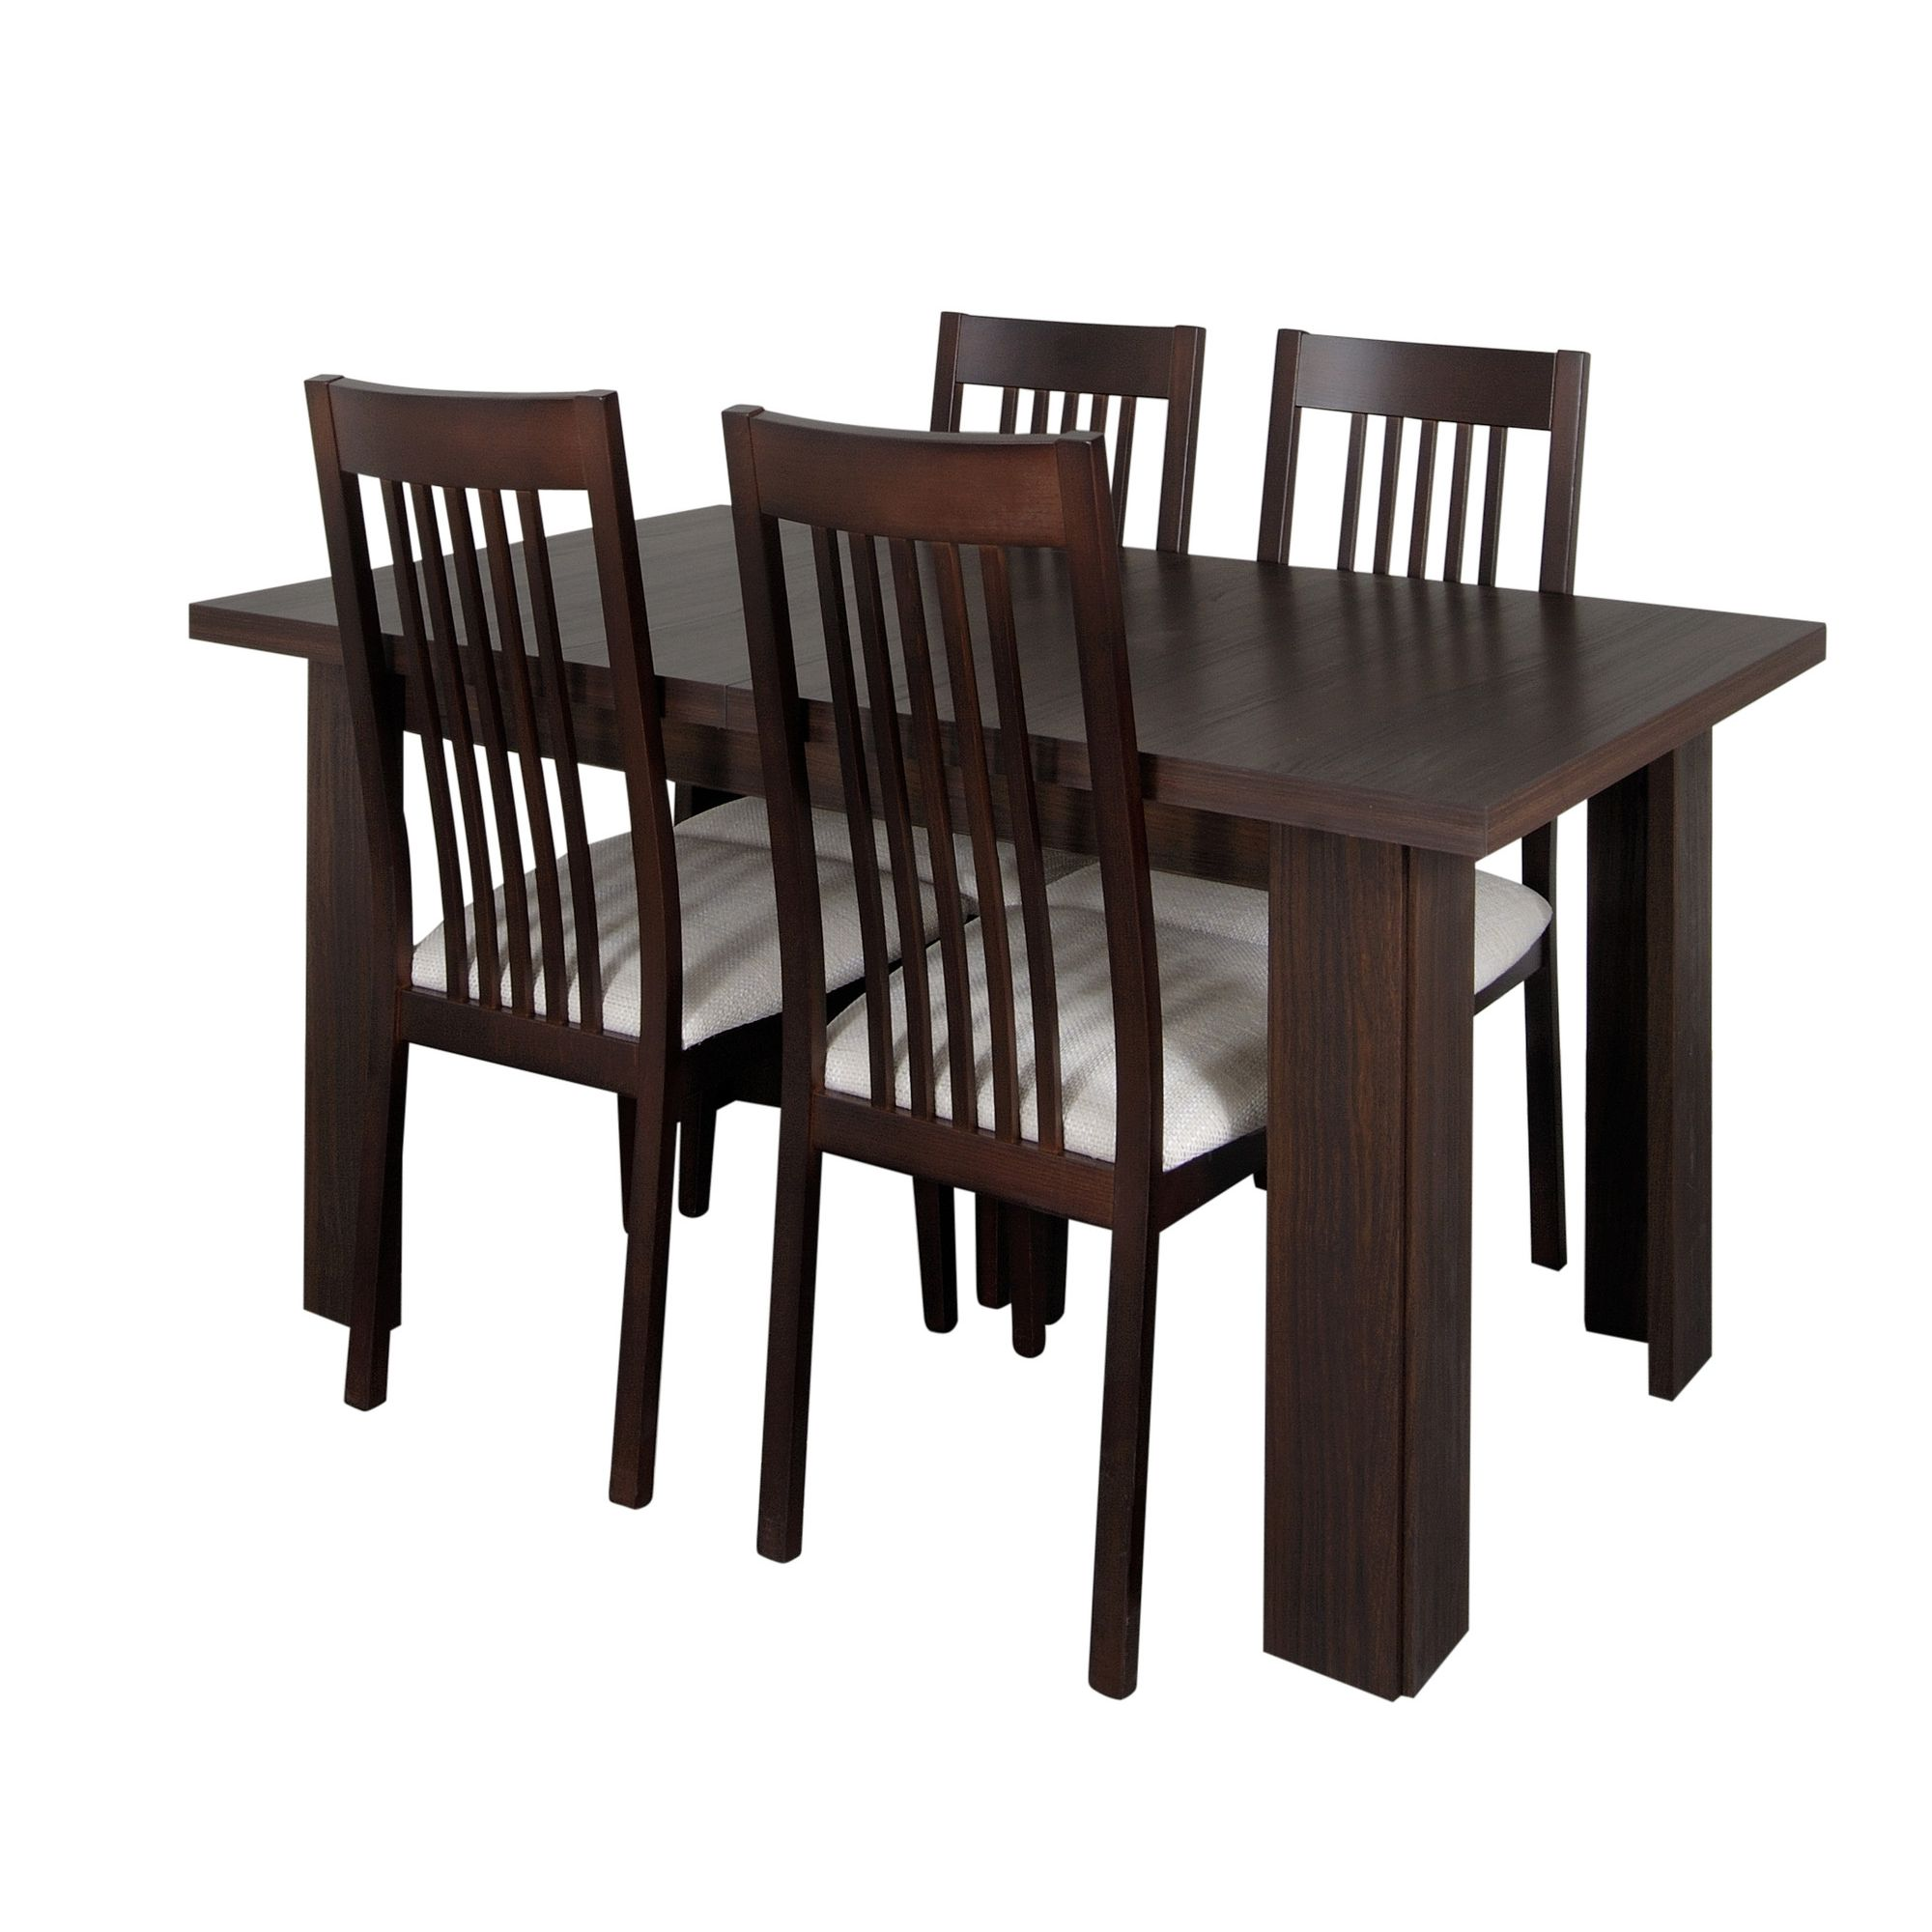 Caxton Royale 4 Leg Extending 4 Chair Dining Set in Dark Oak at Tesco Direct